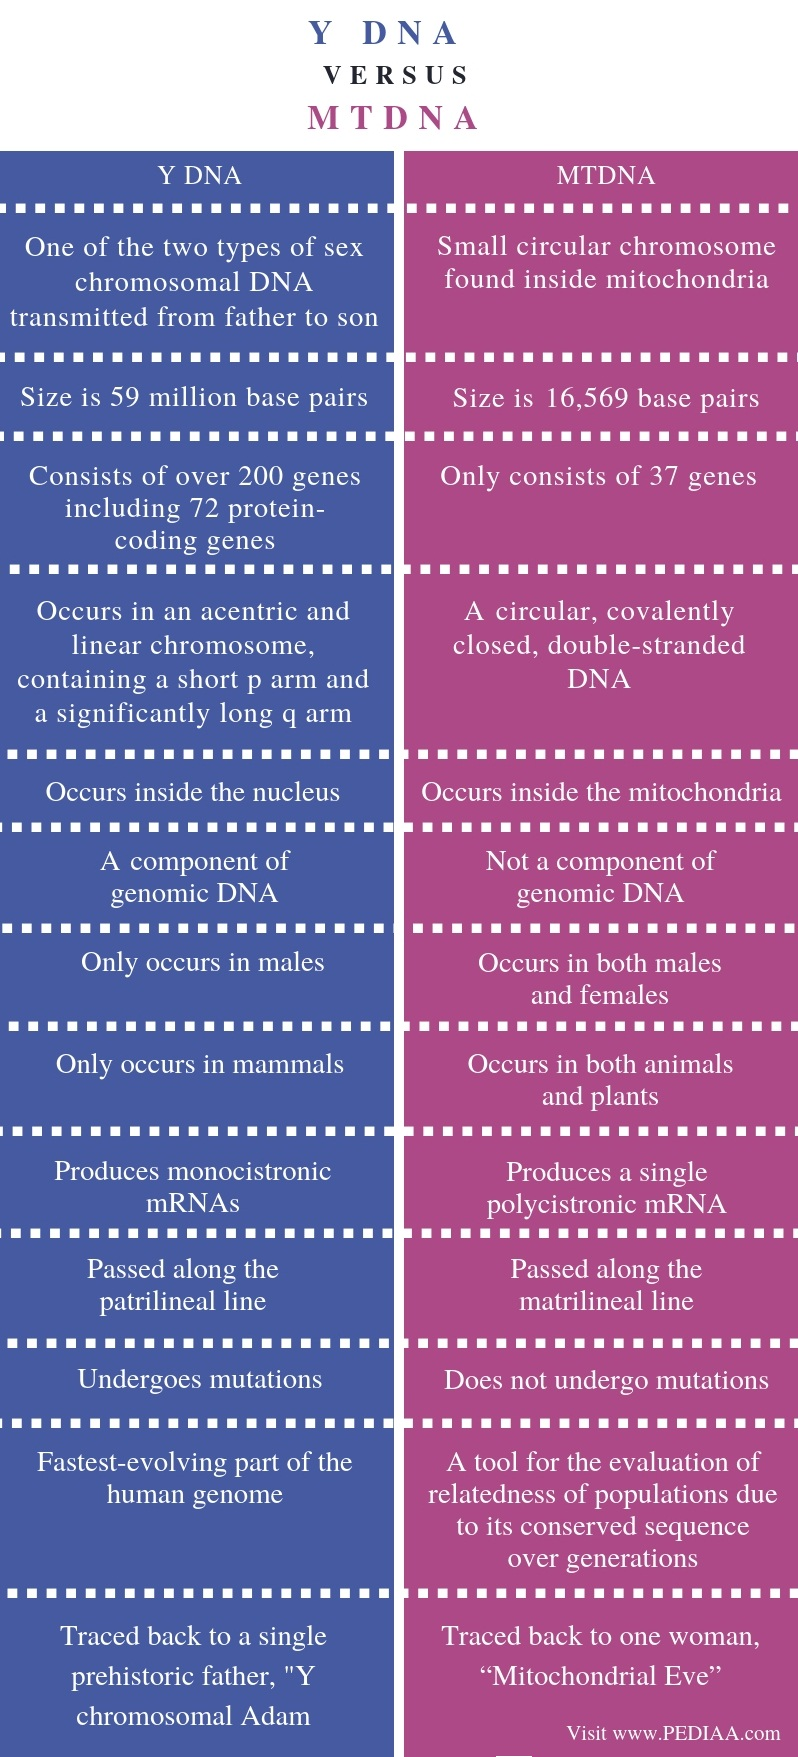 Difference Between Y DNA and mtDNA - Comparison Summary